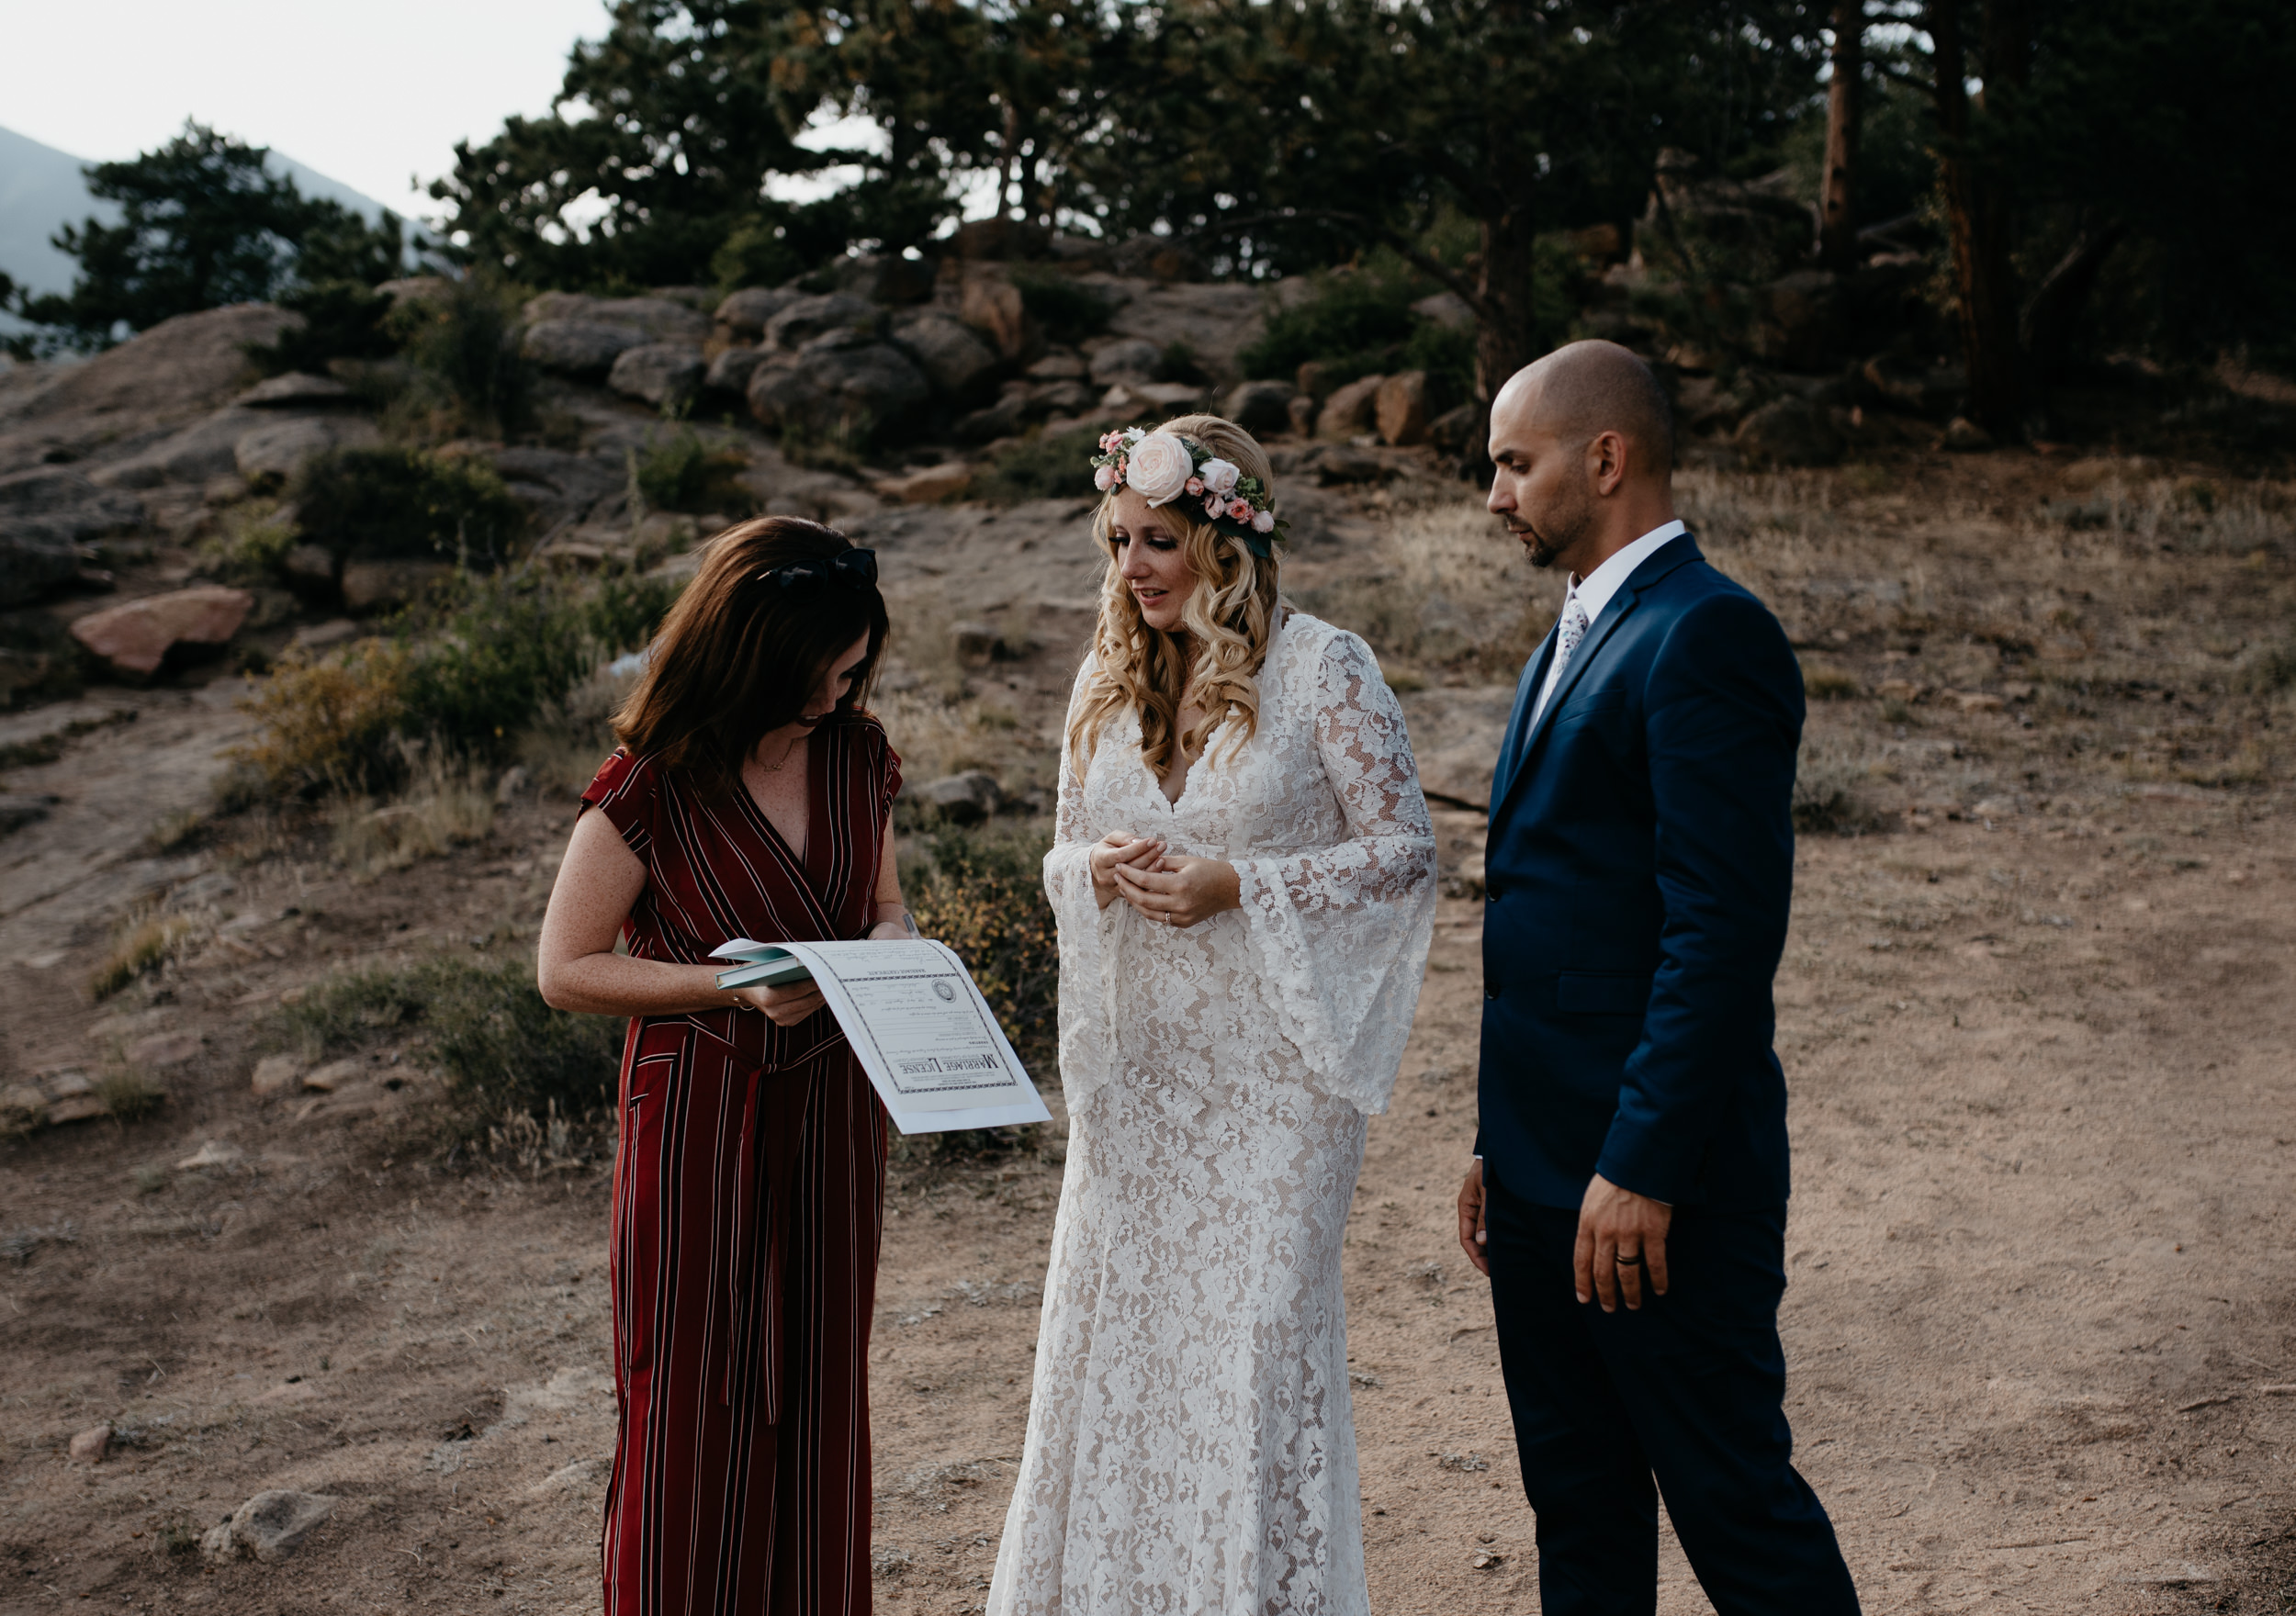 Marriage license signing. Colorado elopement photographer.